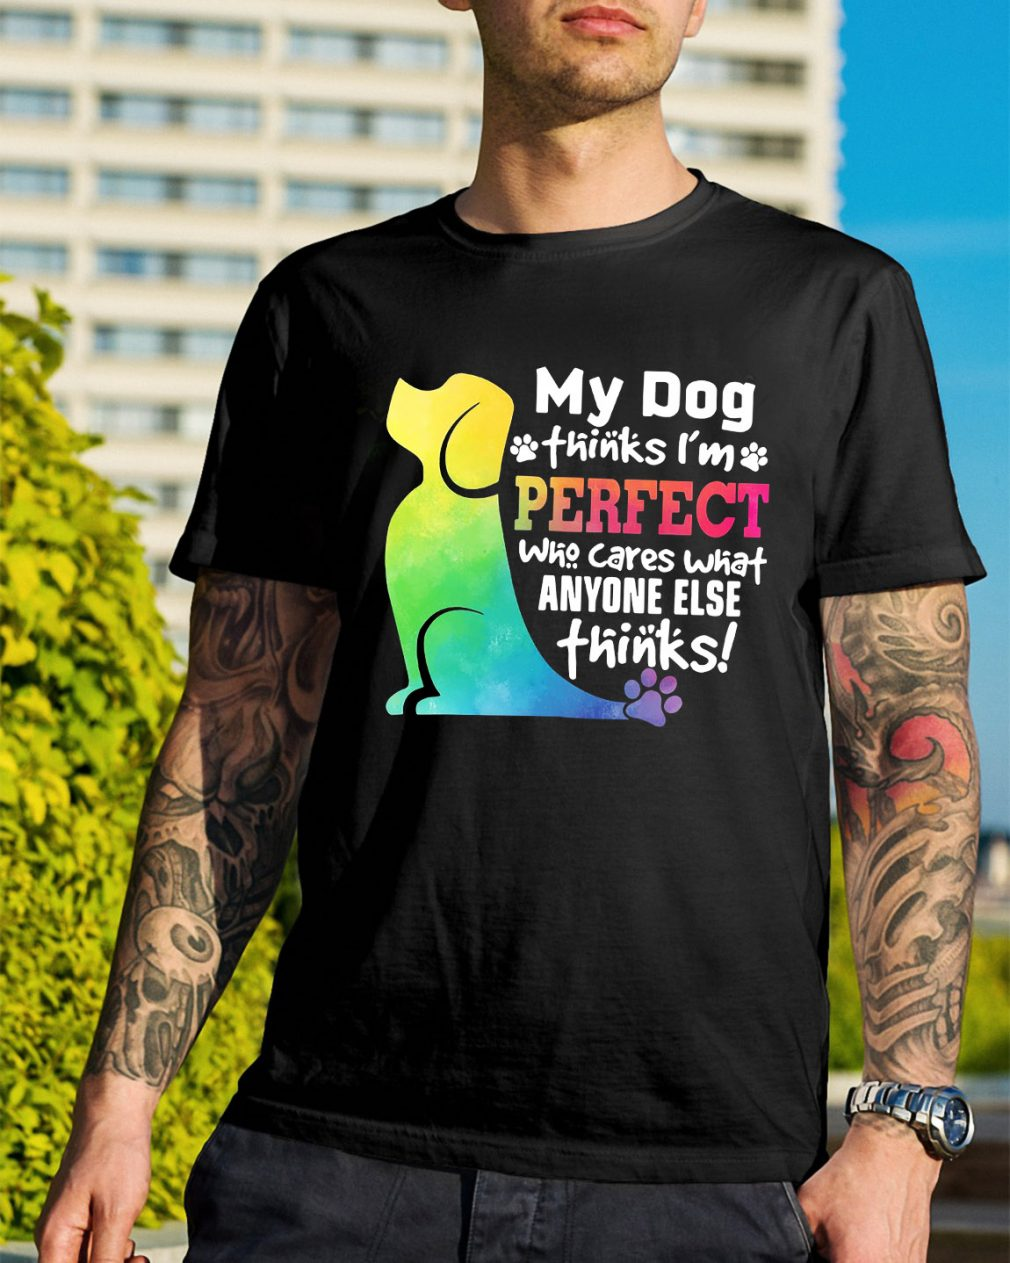 My dog thinks I'm perfect who cares what anyone else thinks shirt